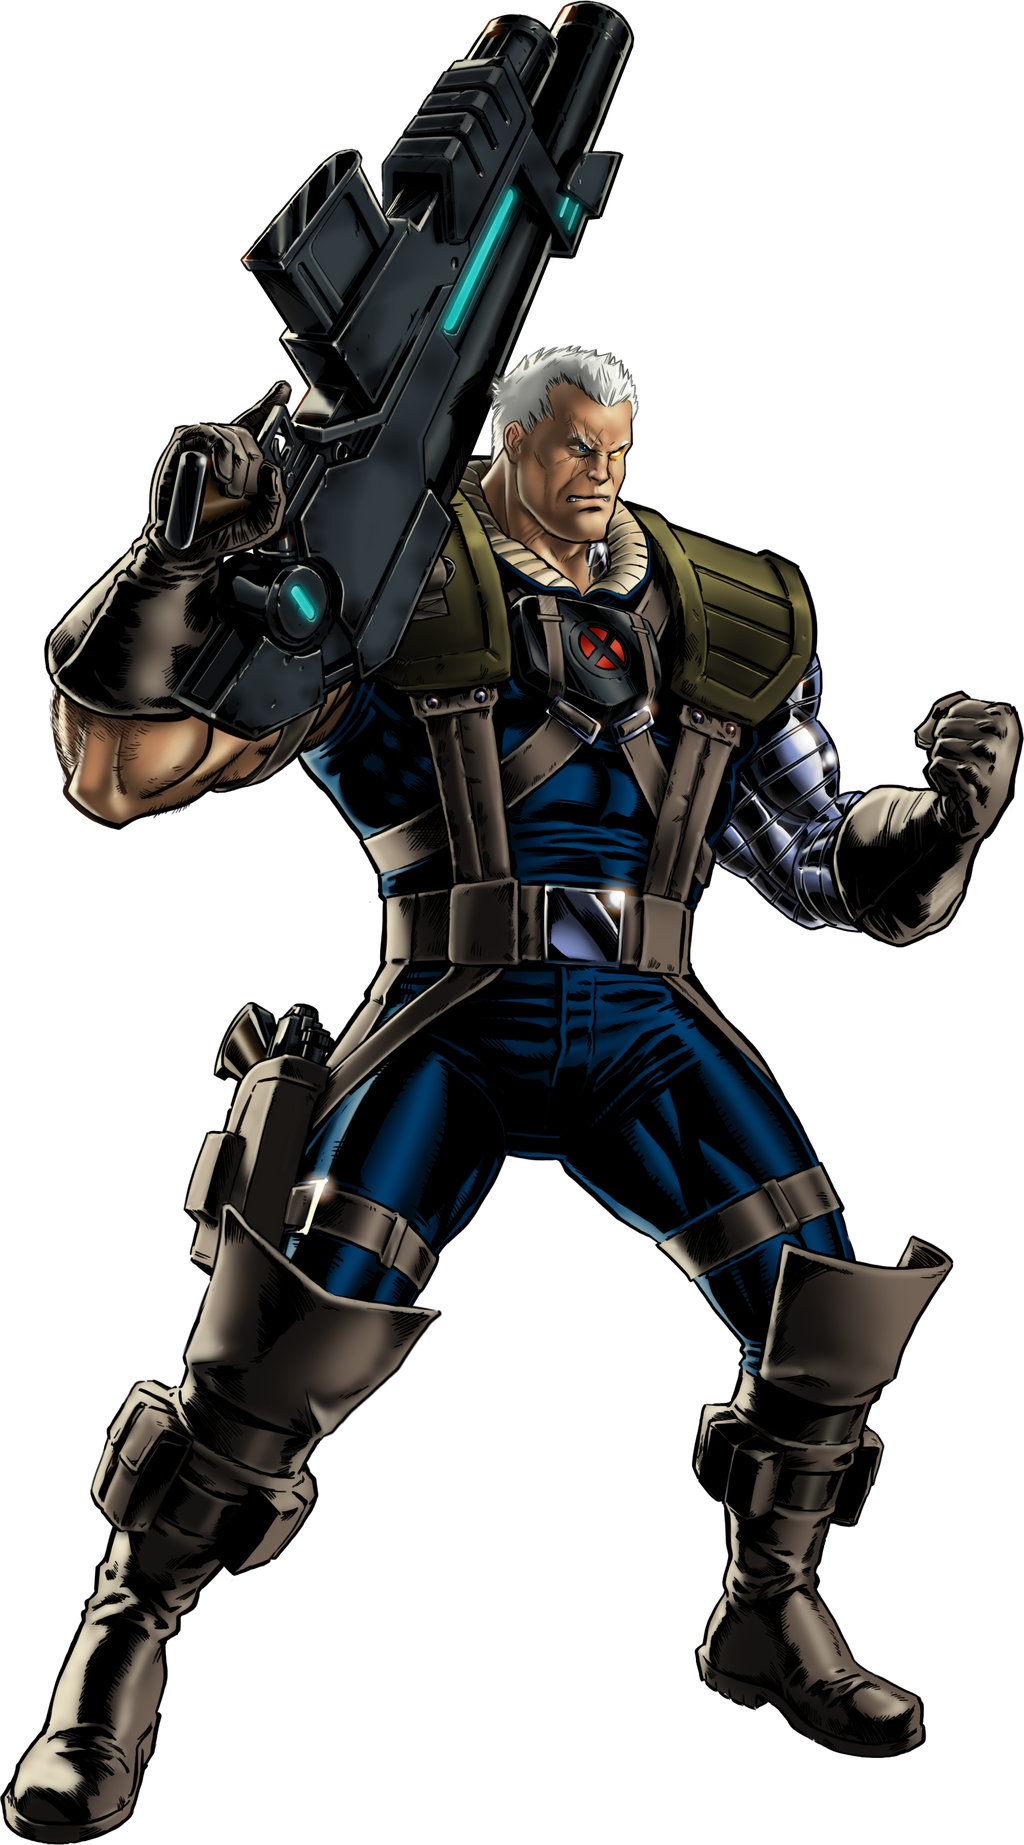 Marvel Avengers Alliance X Men Cable By Ratatrampa87 On